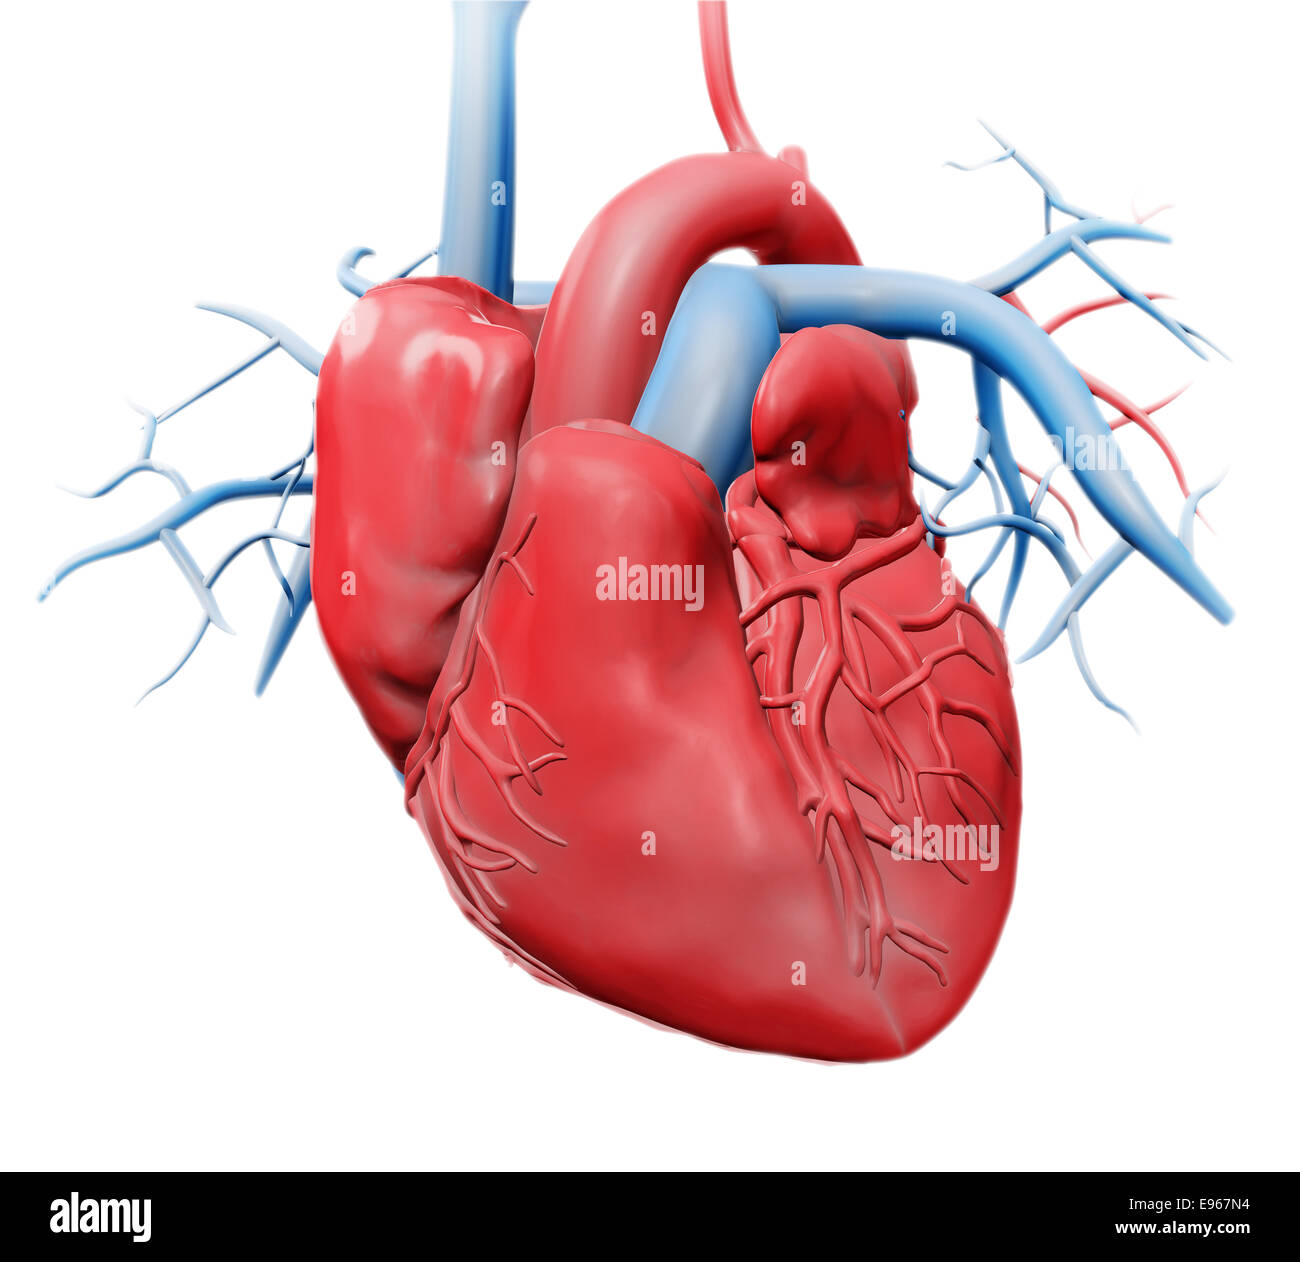 Human heart - cardiology health care illustration - Stock Image